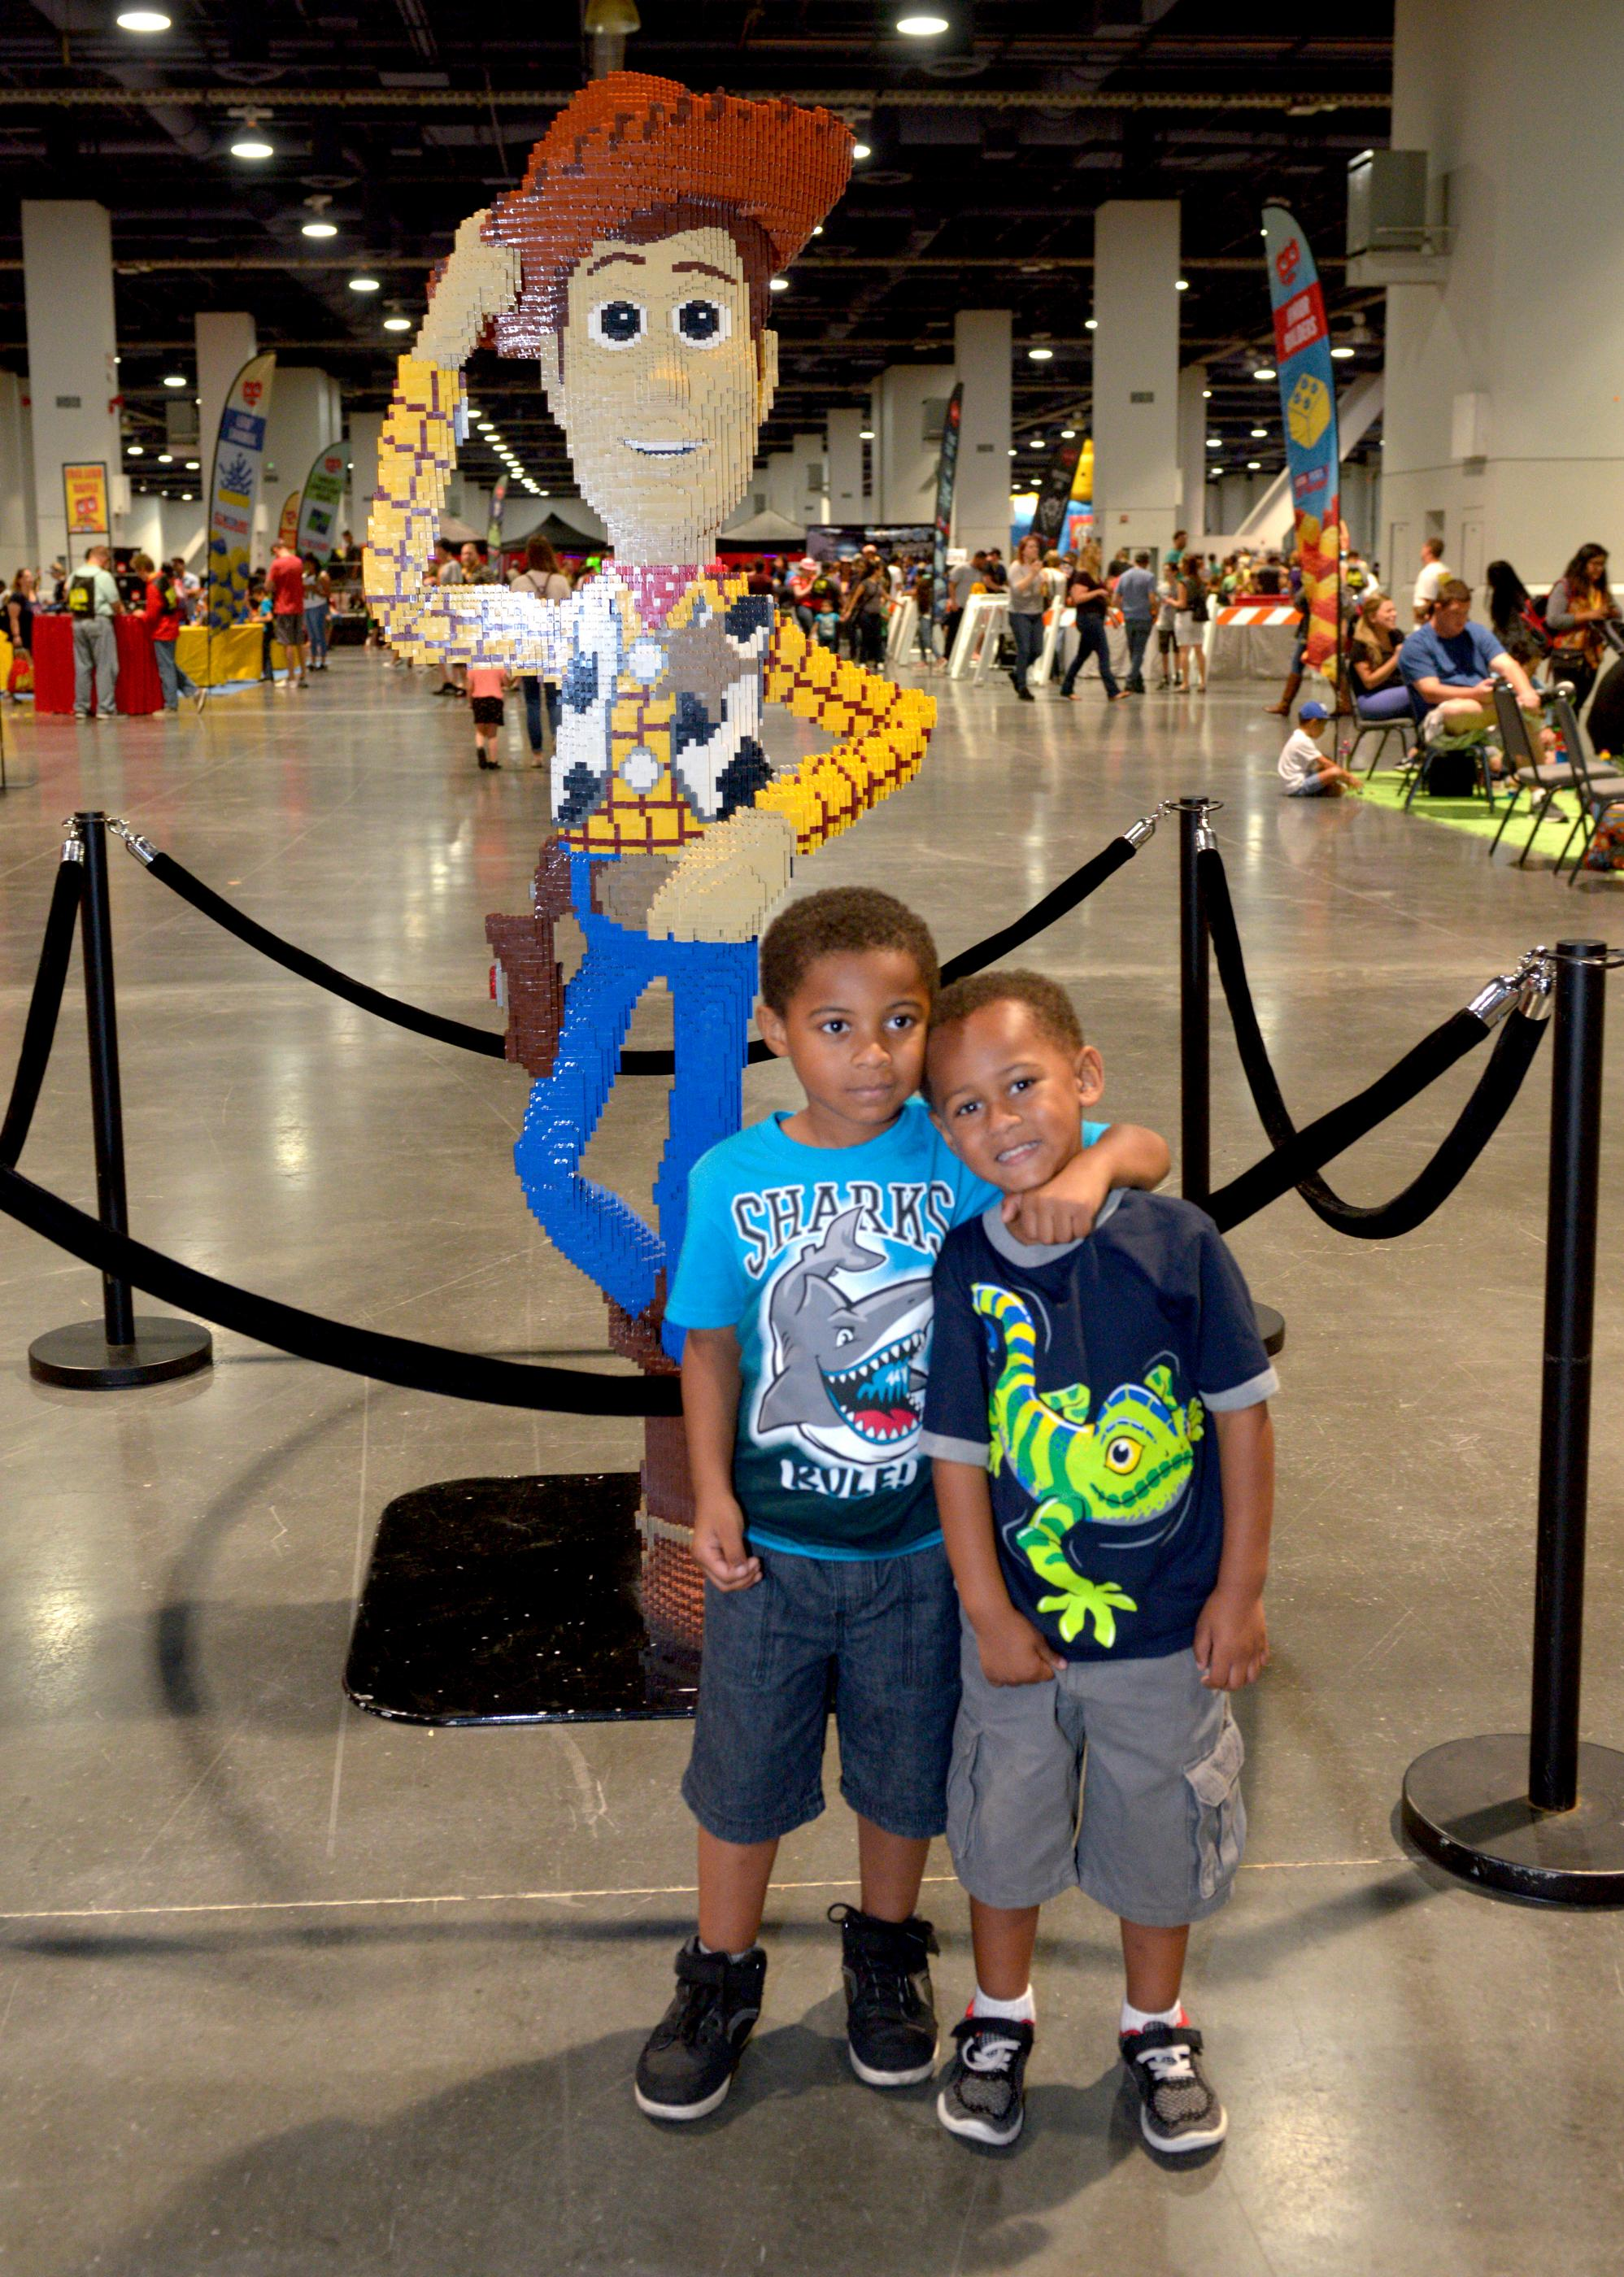 Buddies pose with a statue of Toy Stories Woody made completely out of Legos during the Brick Fest Live Lego Fan Experience at the Las Vegas Convention Center, September 9, 2017. [Glenn Pinkerton/Las Vegas News Bureau]